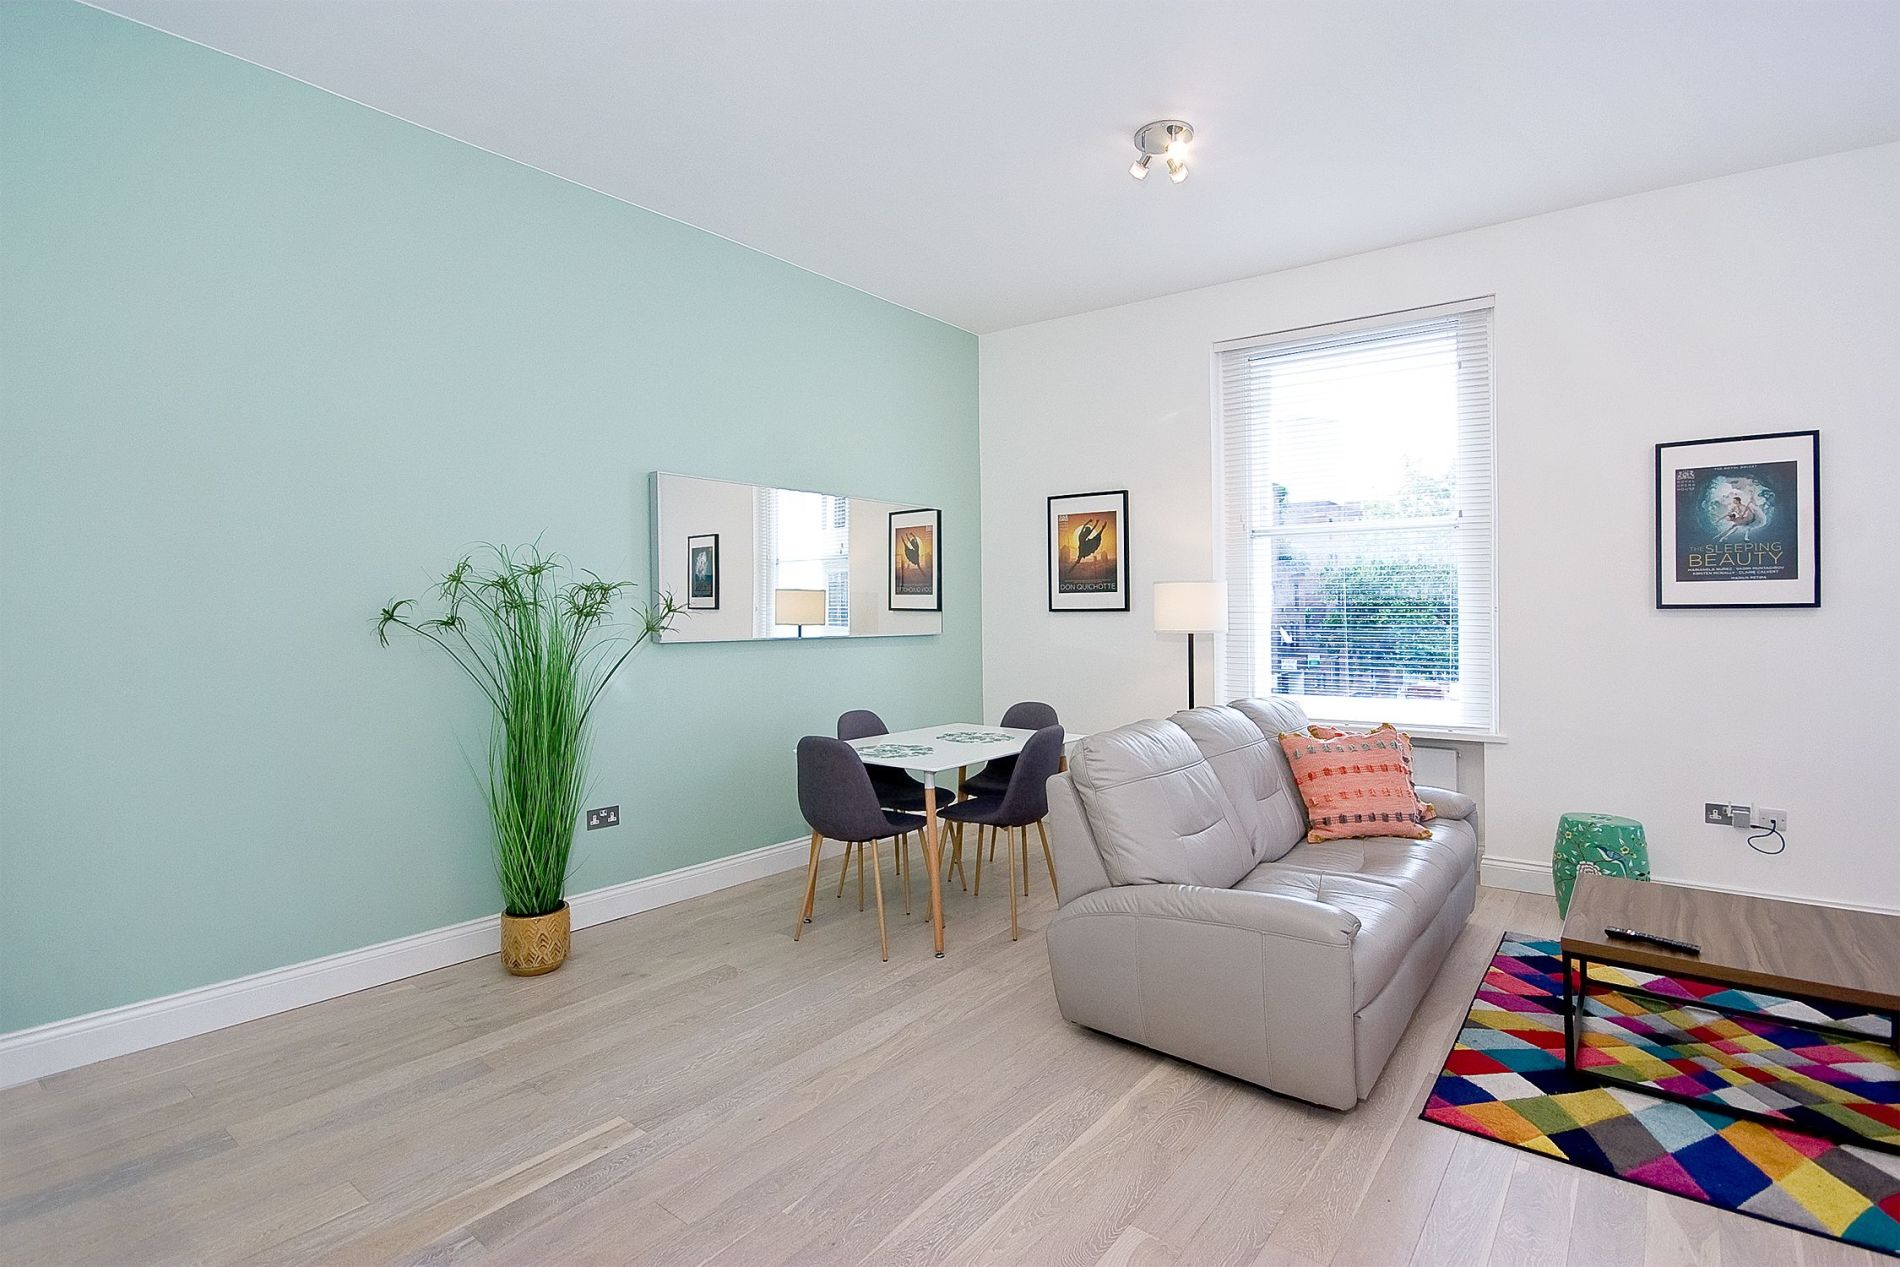 Serviced accommodation in a central location in London suitable for families with children